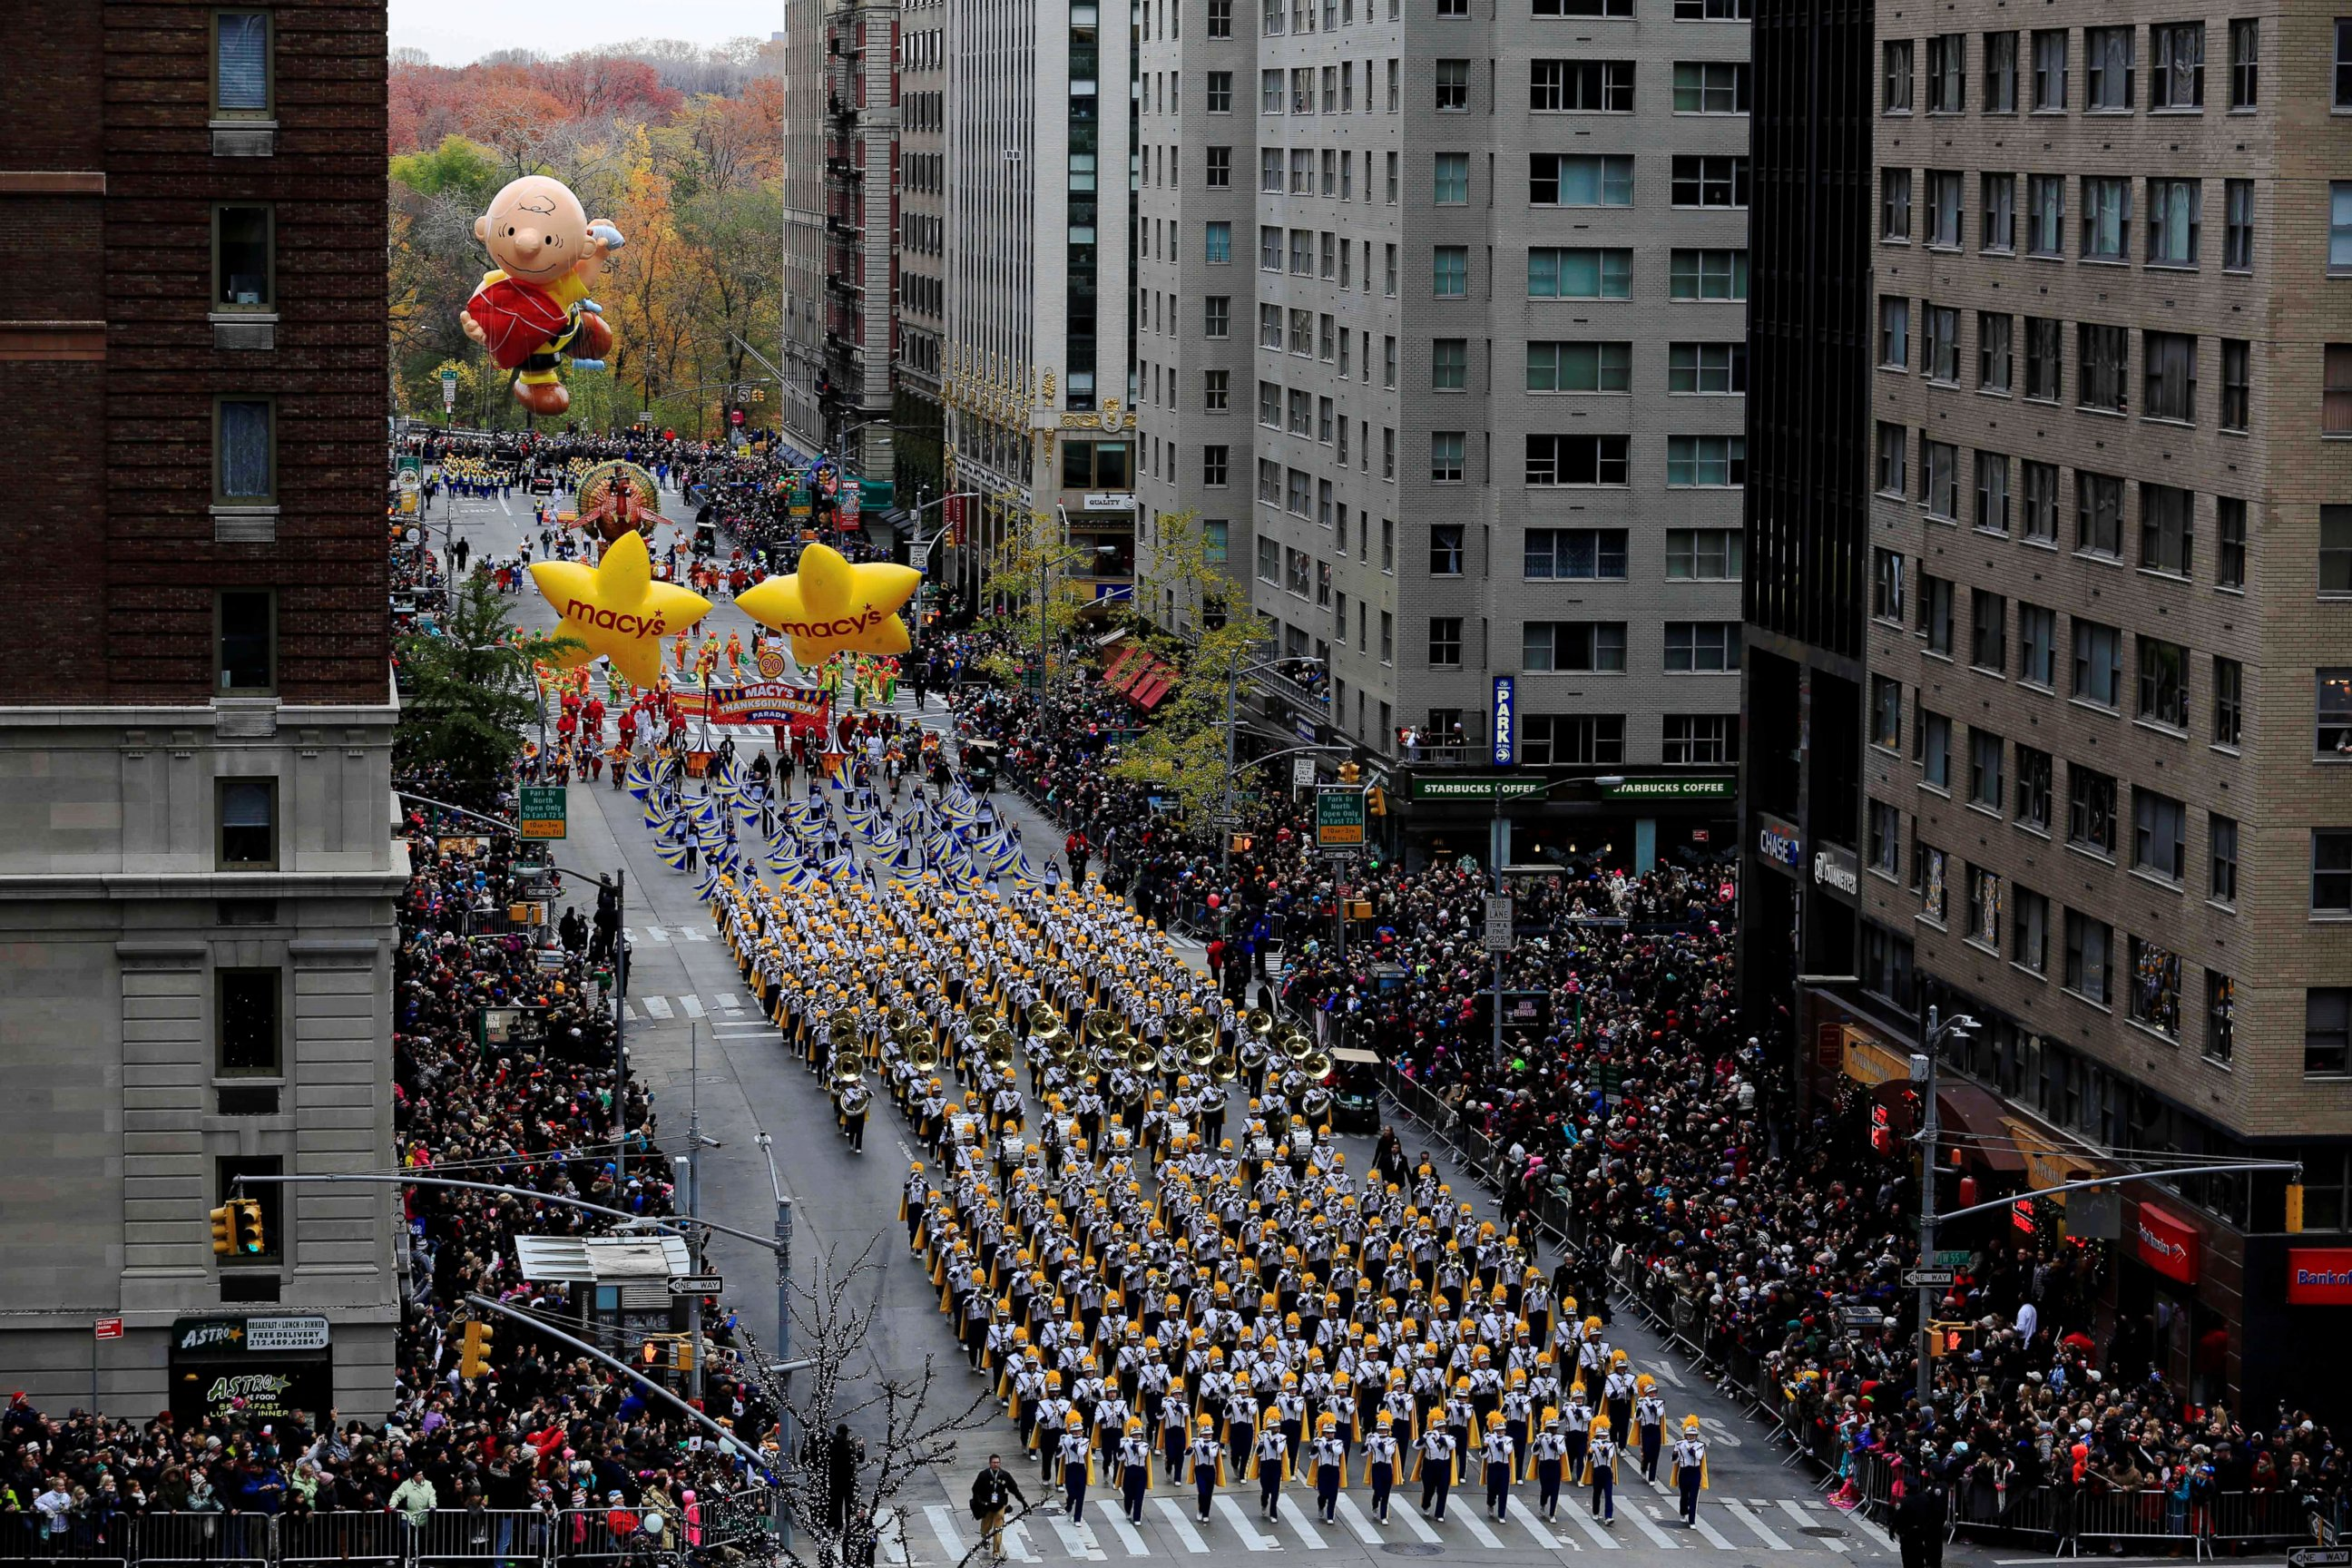 Macy Thanksgiving day parade